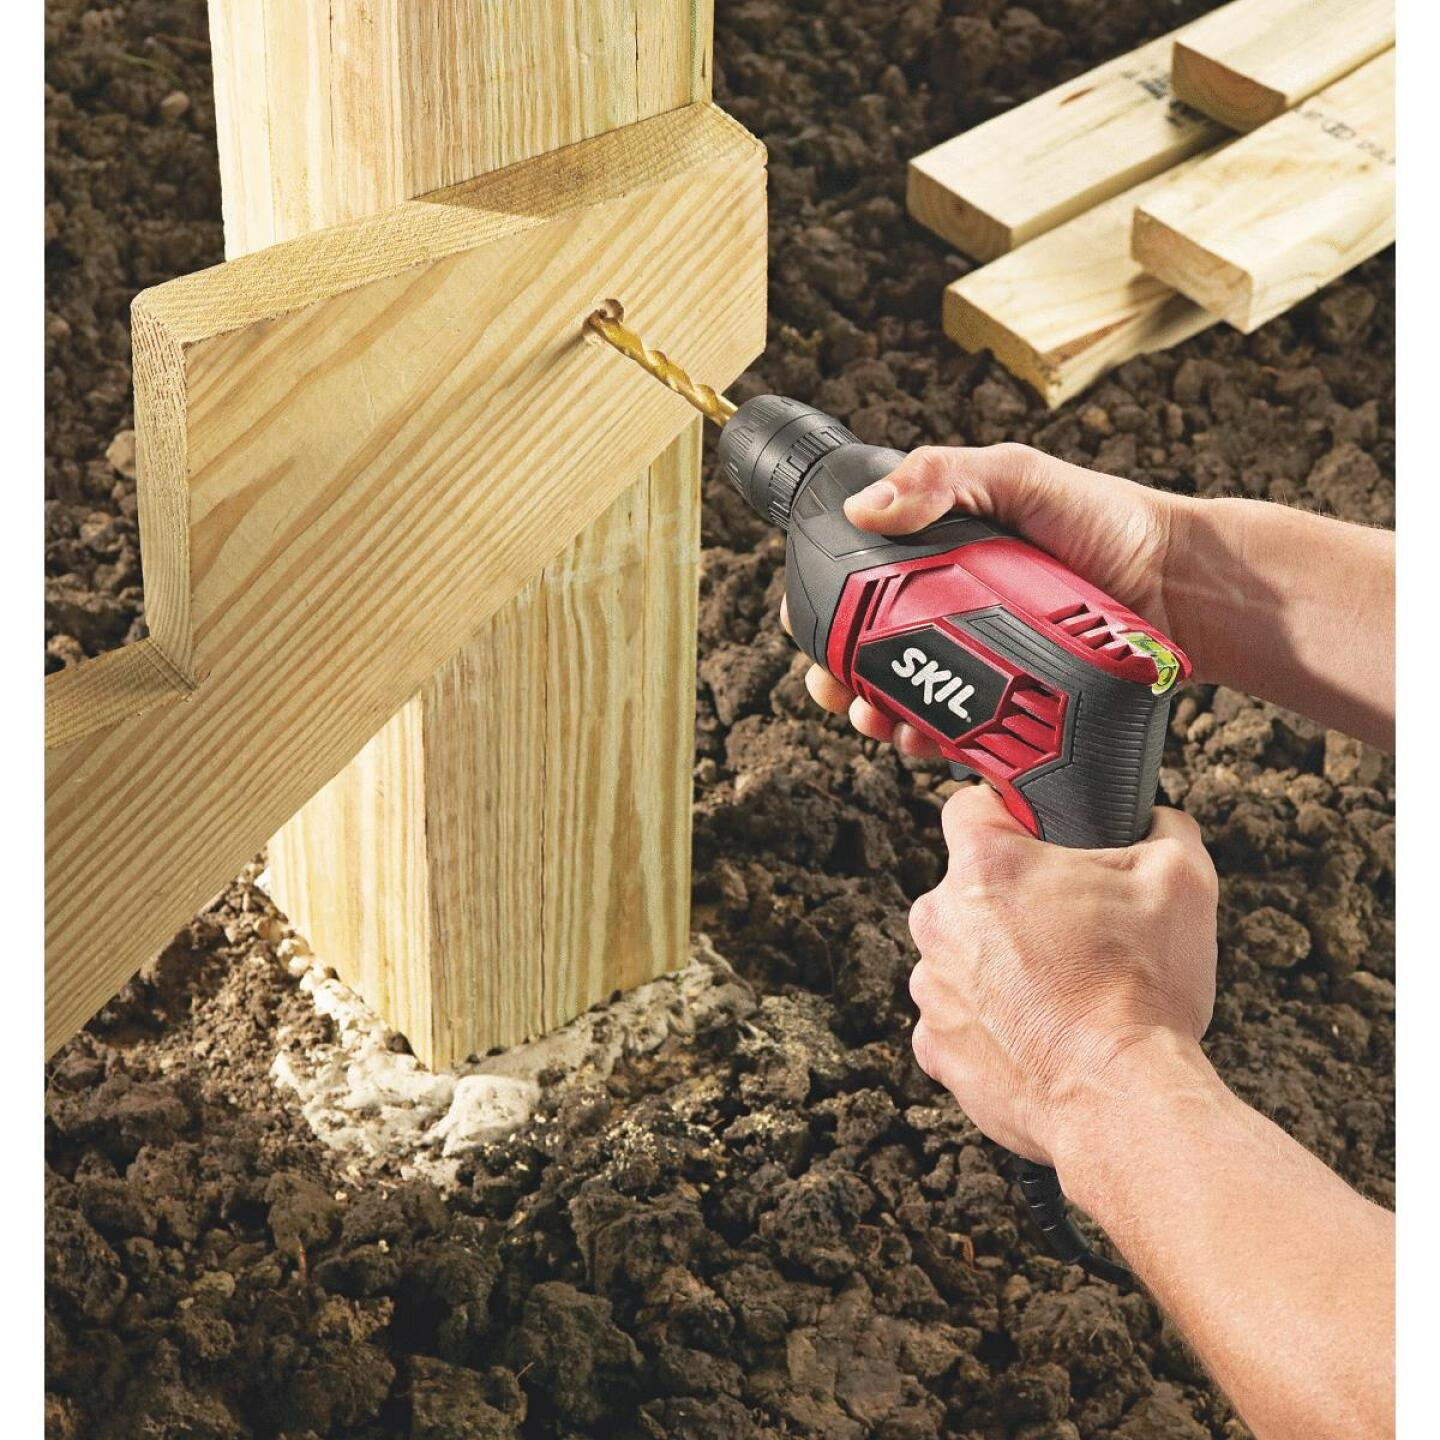 SKIL 3/8 In. 5.5-Amp Keyless Electric Drill with Case Image 2